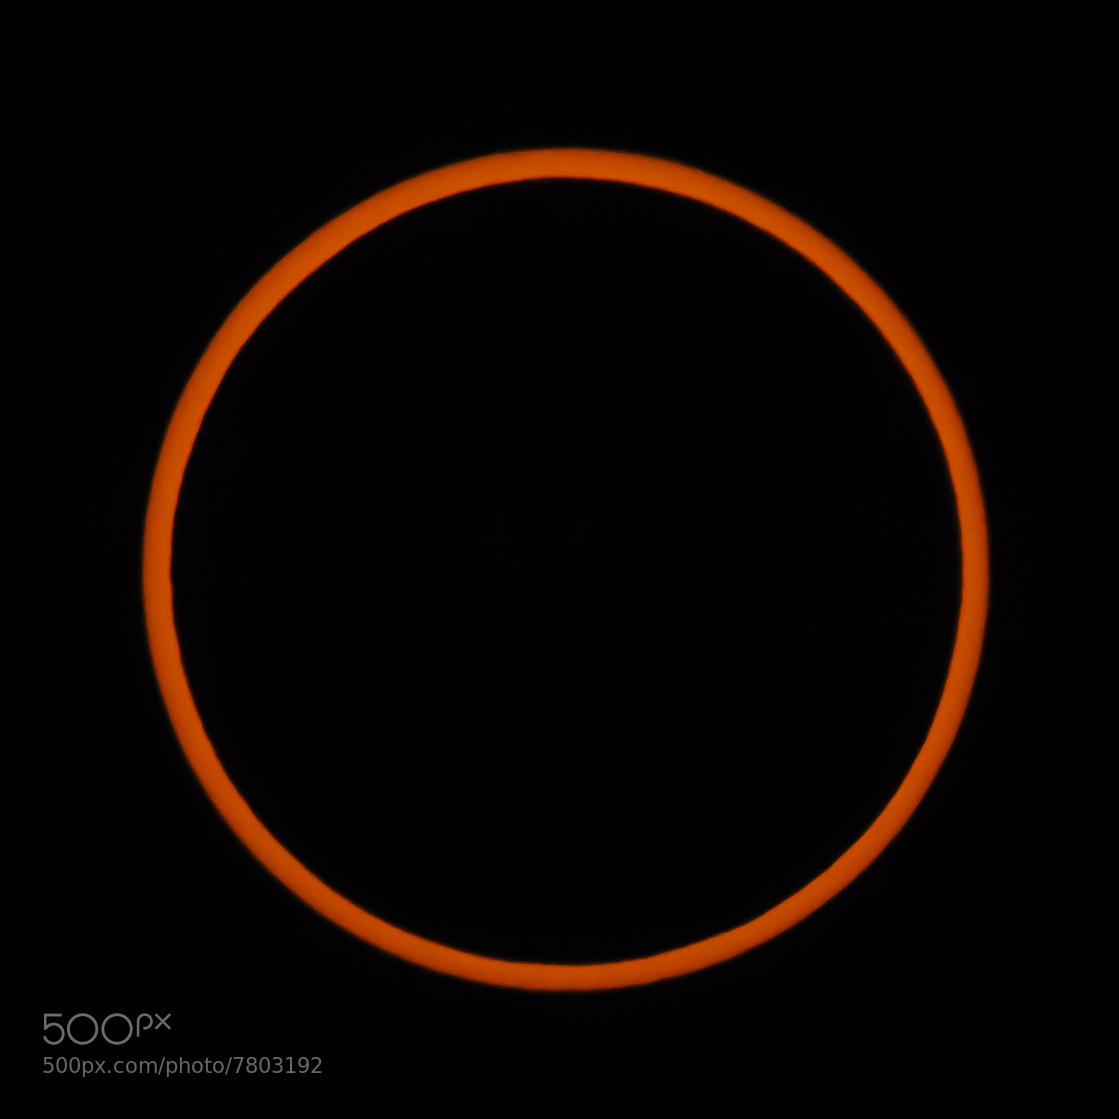 Photograph 2012 Annular Eclipse by Jeff McGrath on 500px